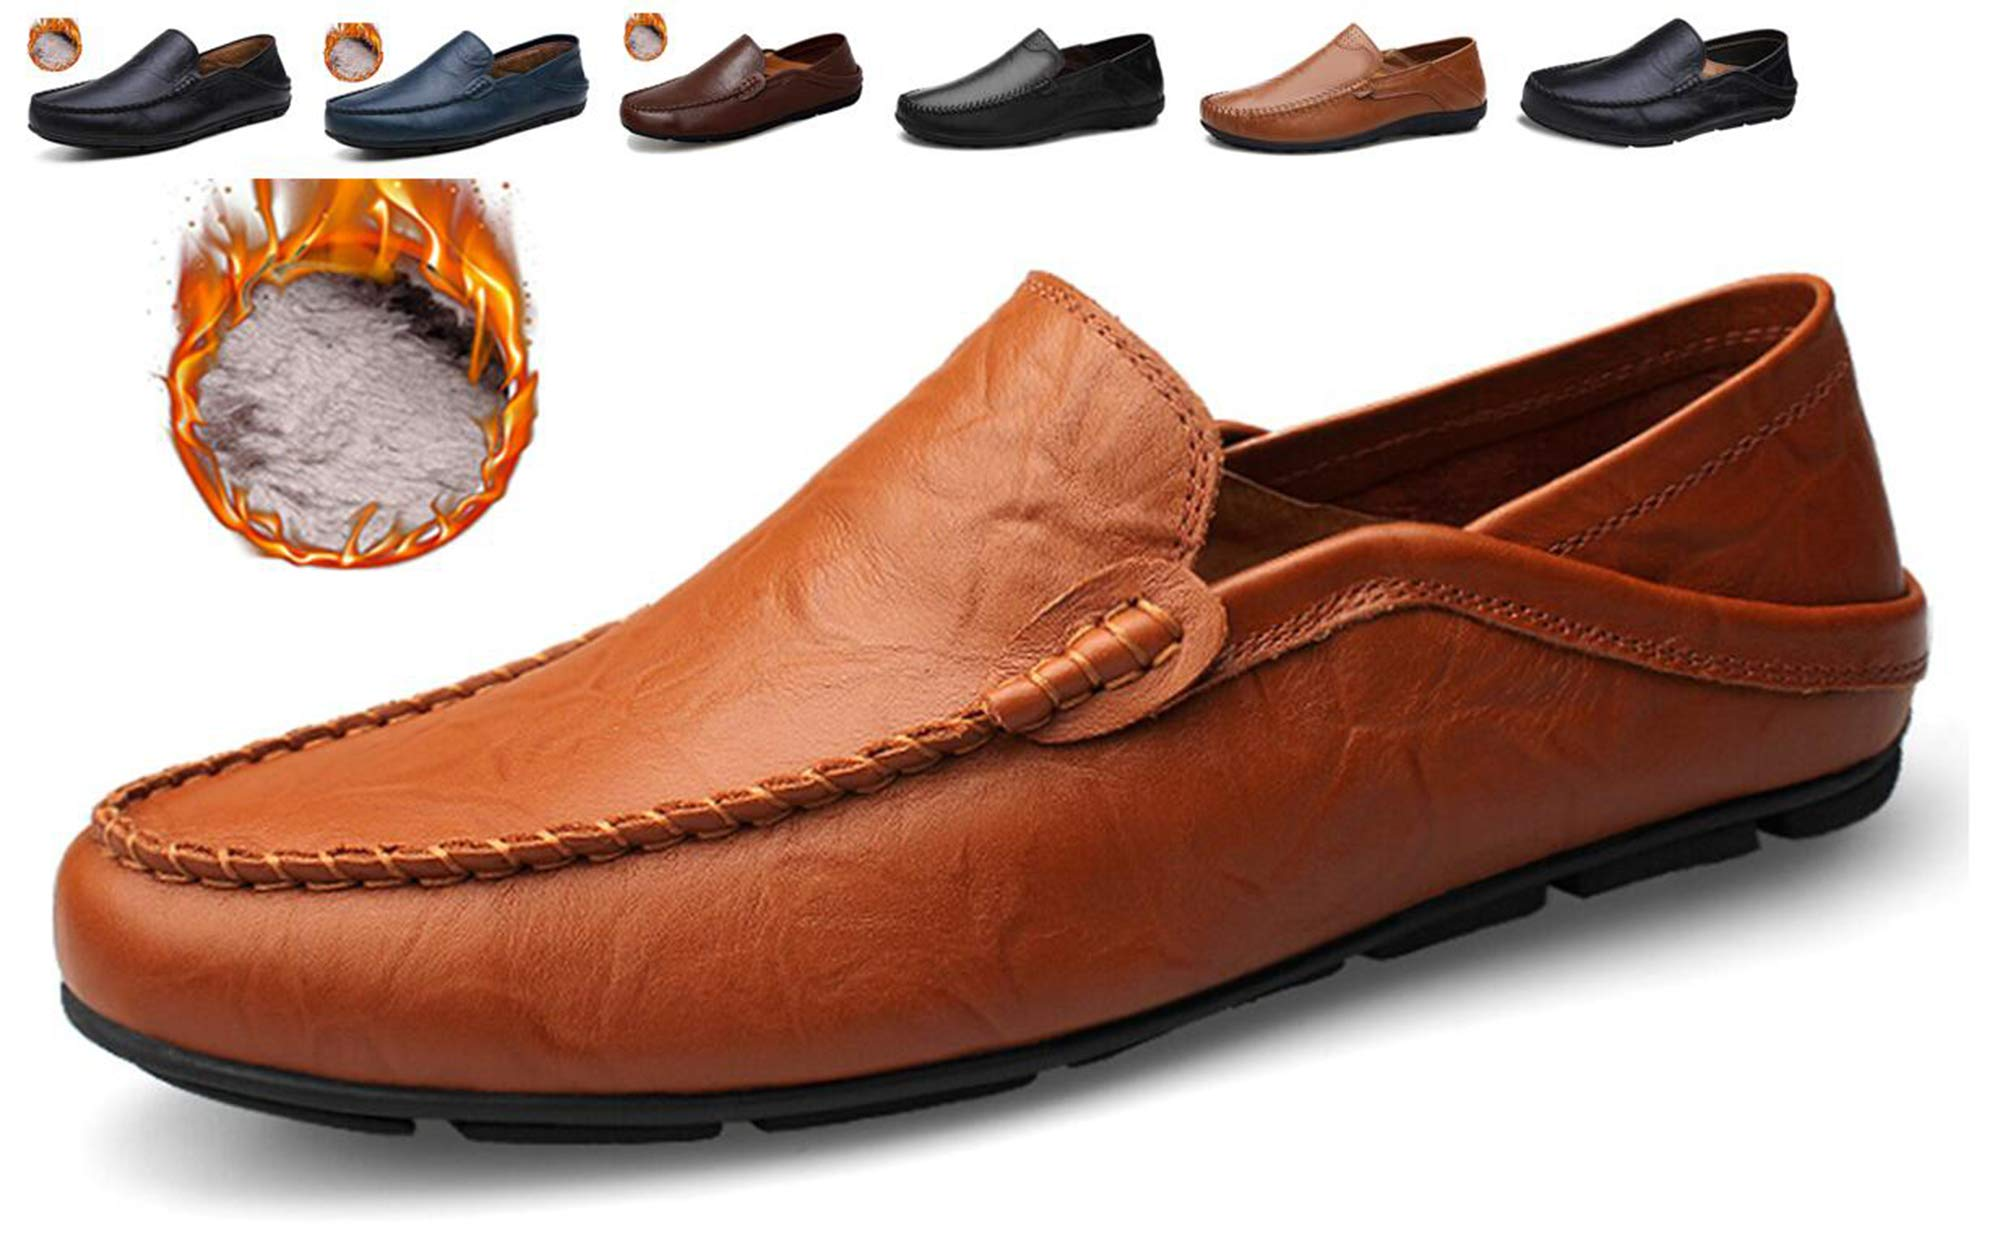 Go Tour Men's Premium Genuine Leather Casual Slip On Loafers Breathable Driving Shoes Fashion Slipper Brown Fur 45